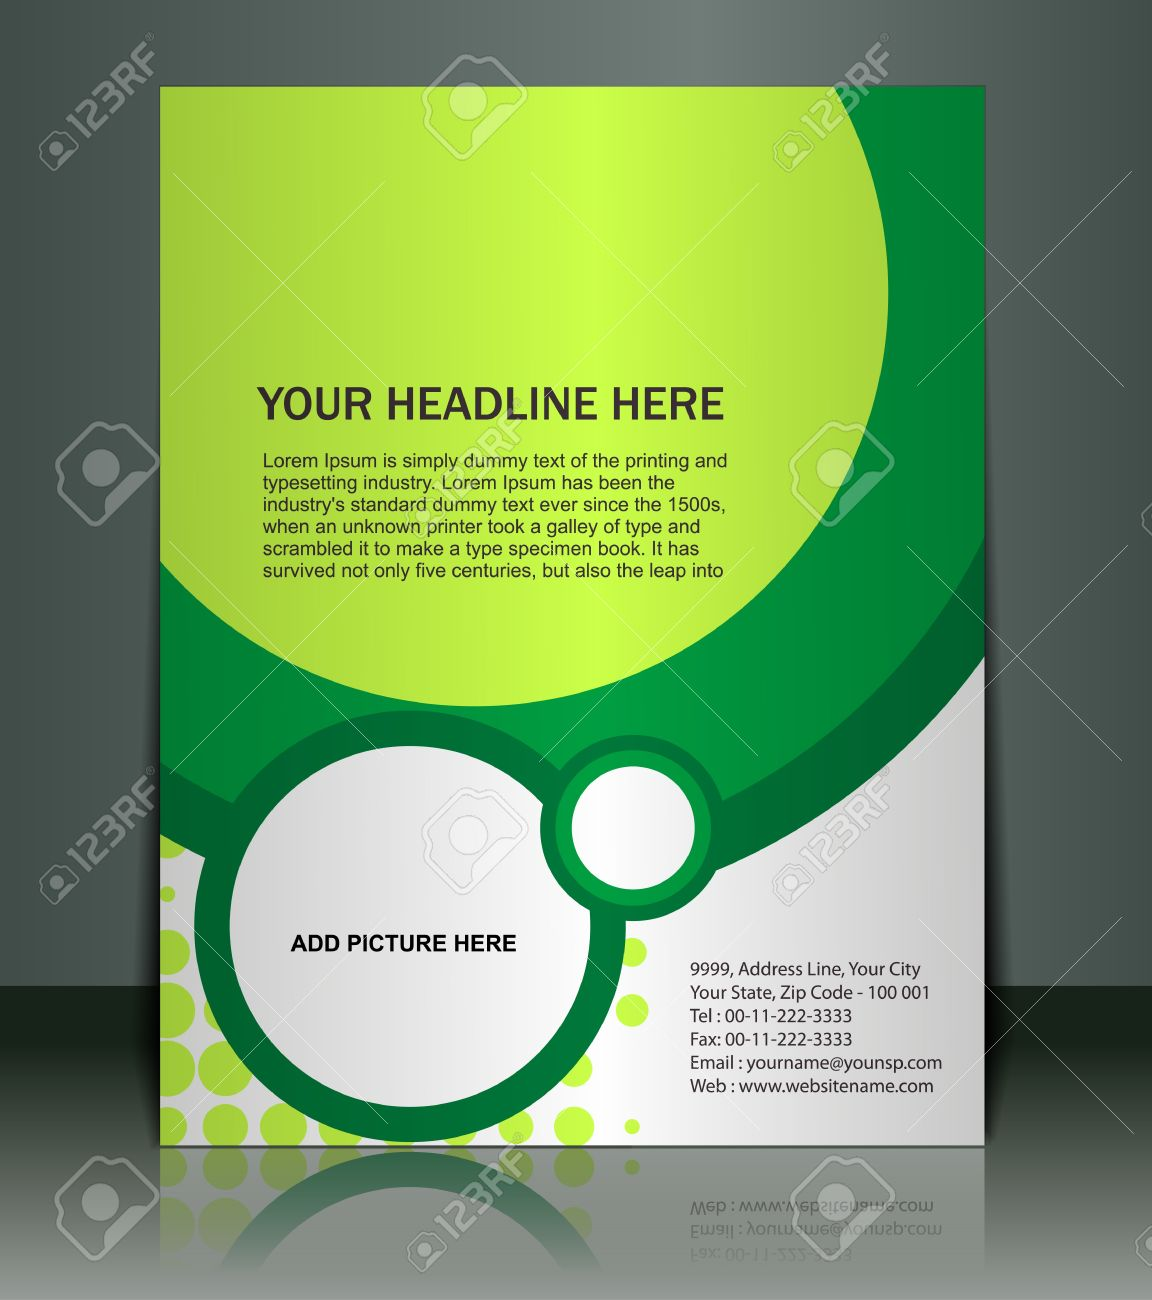 Poster design vector download - Vector Editable Presentation Of Flyer Poster Design Content Background Stock Vector 10054922